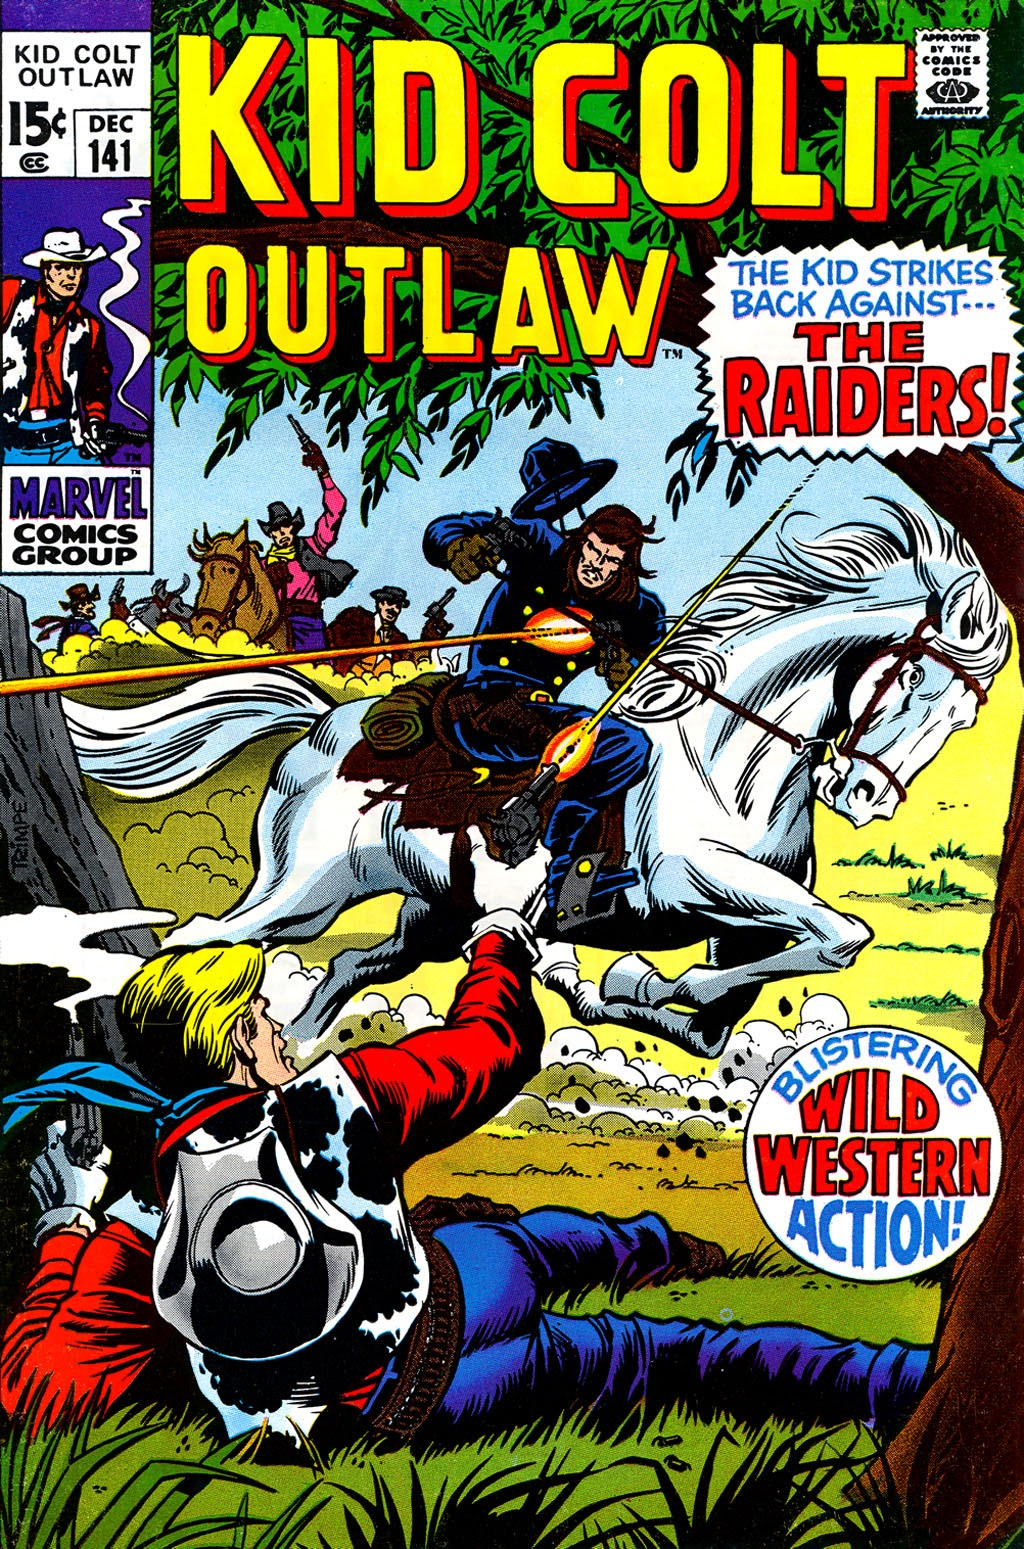 Kid Colt Outlaw issue 141 - Page 1